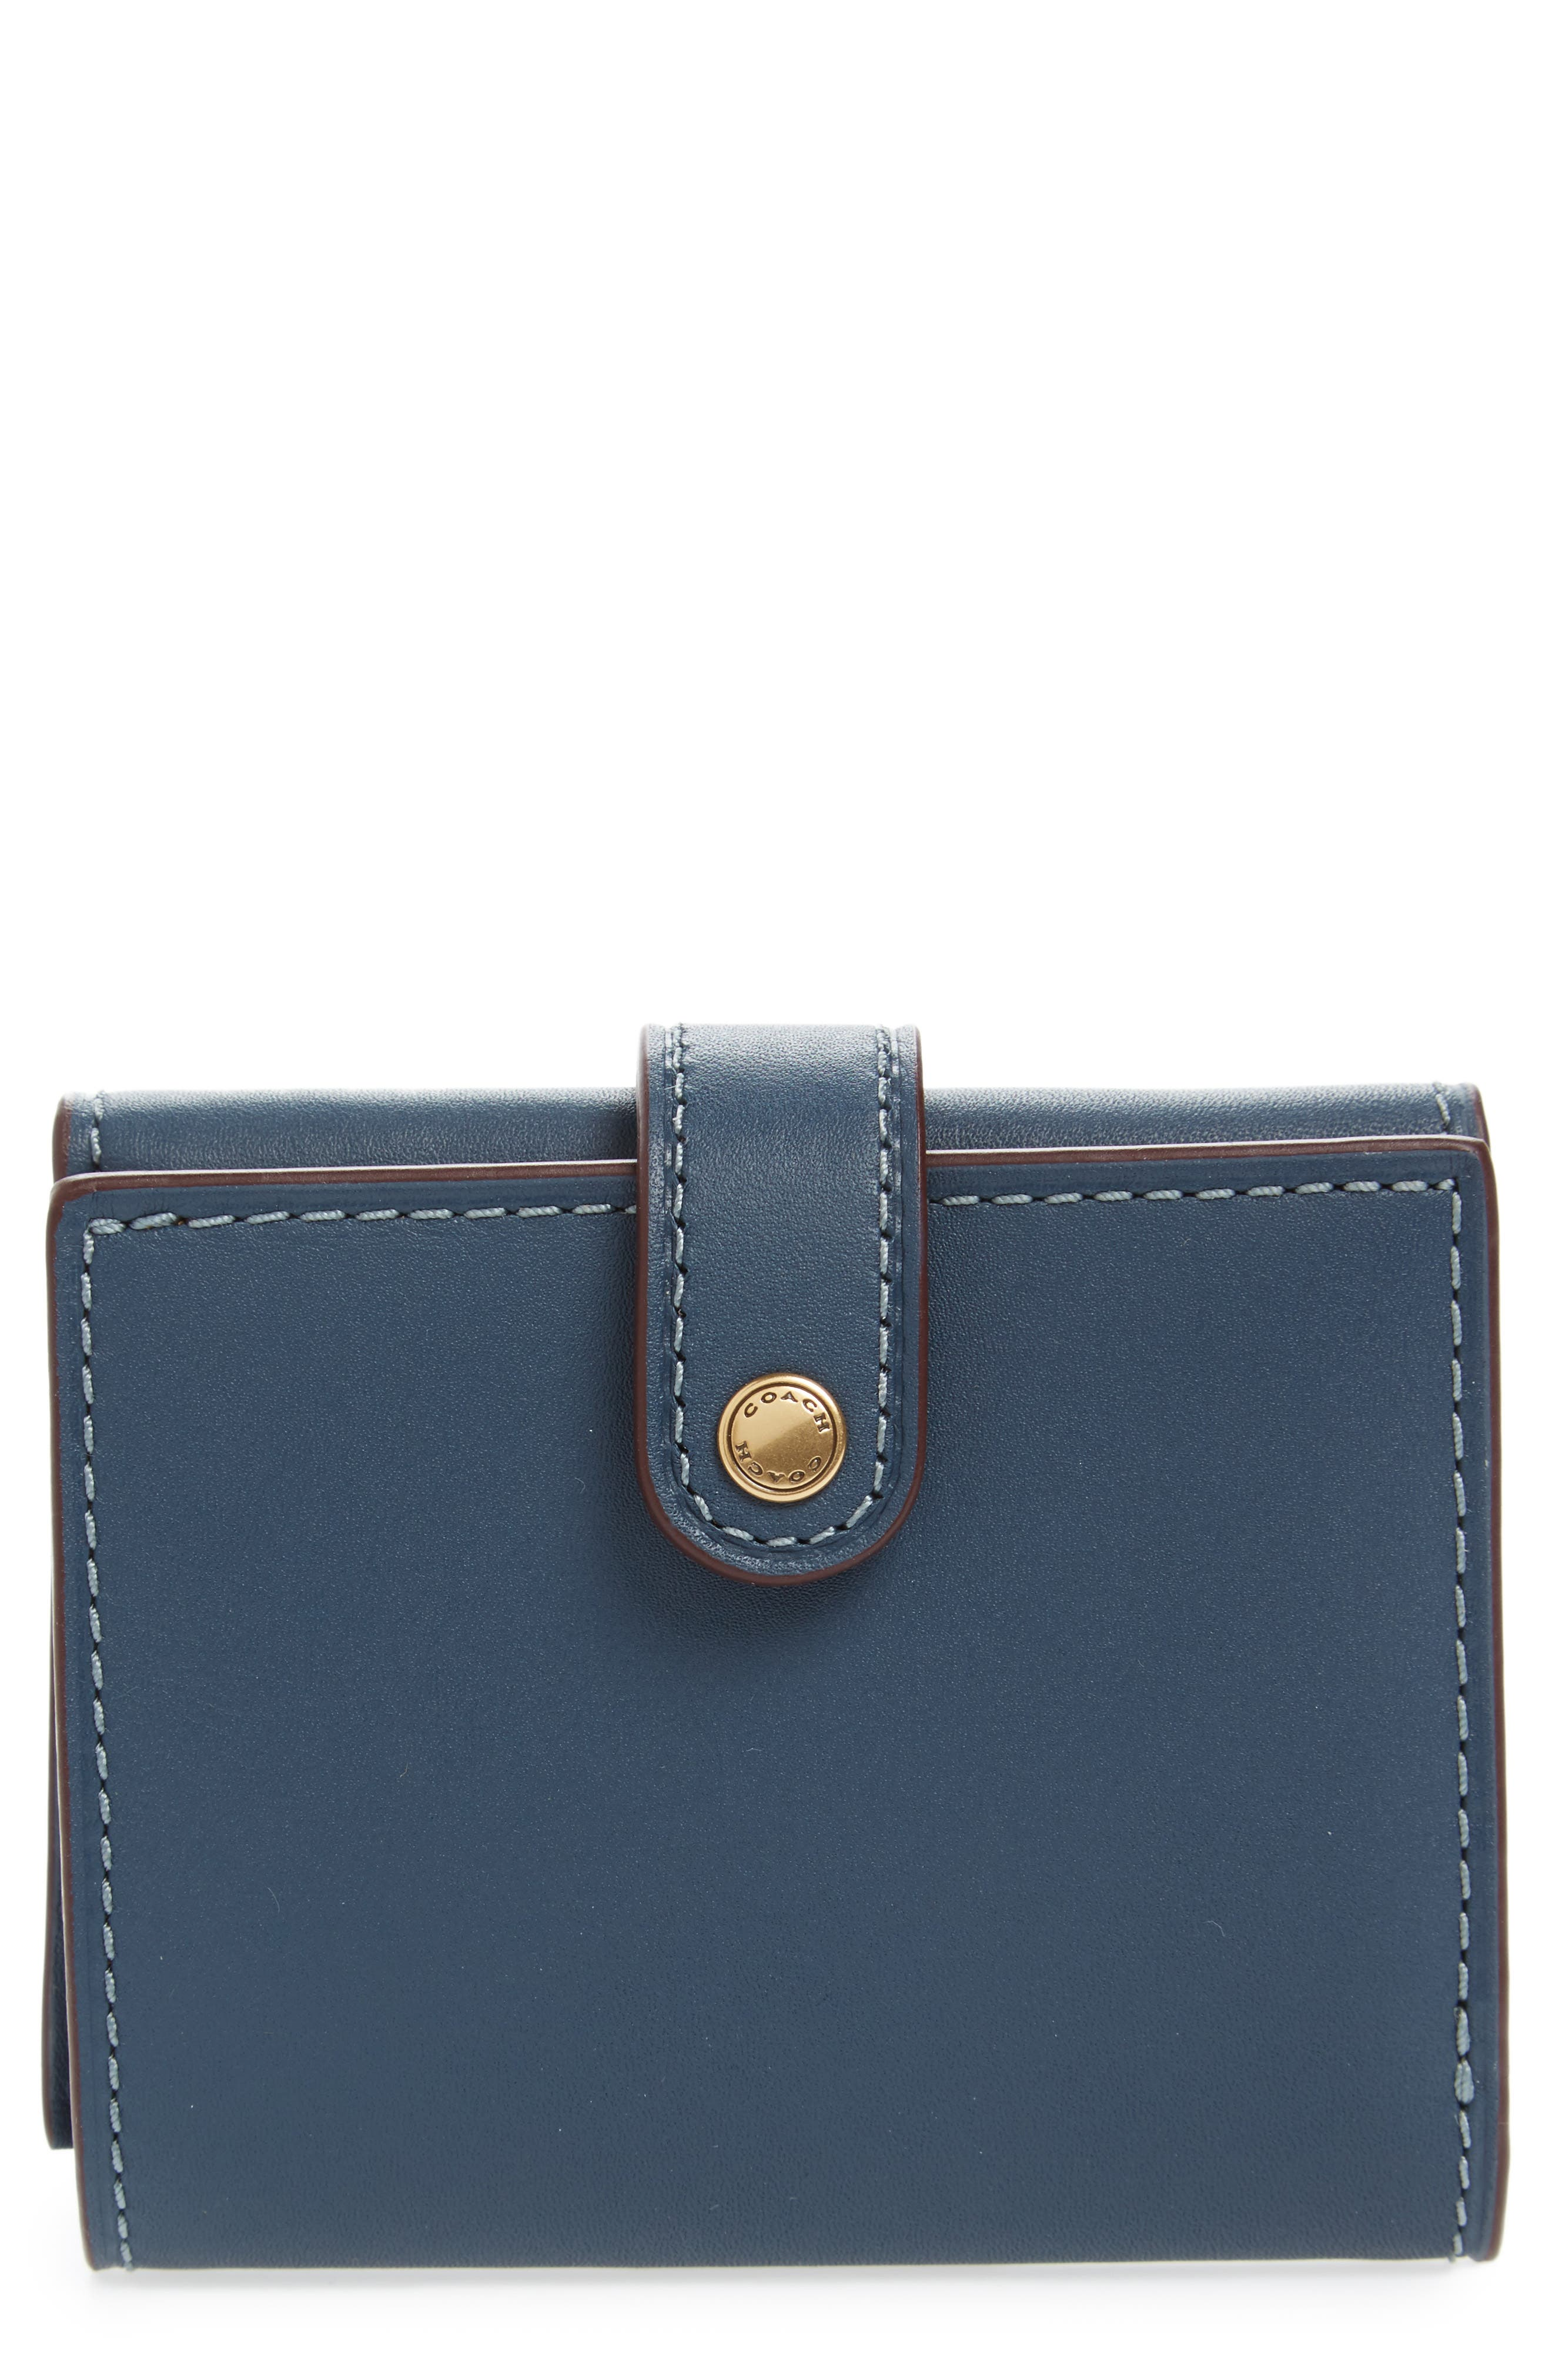 Small Leather Trifold Wallet,                         Main,                         color, Dark Denim